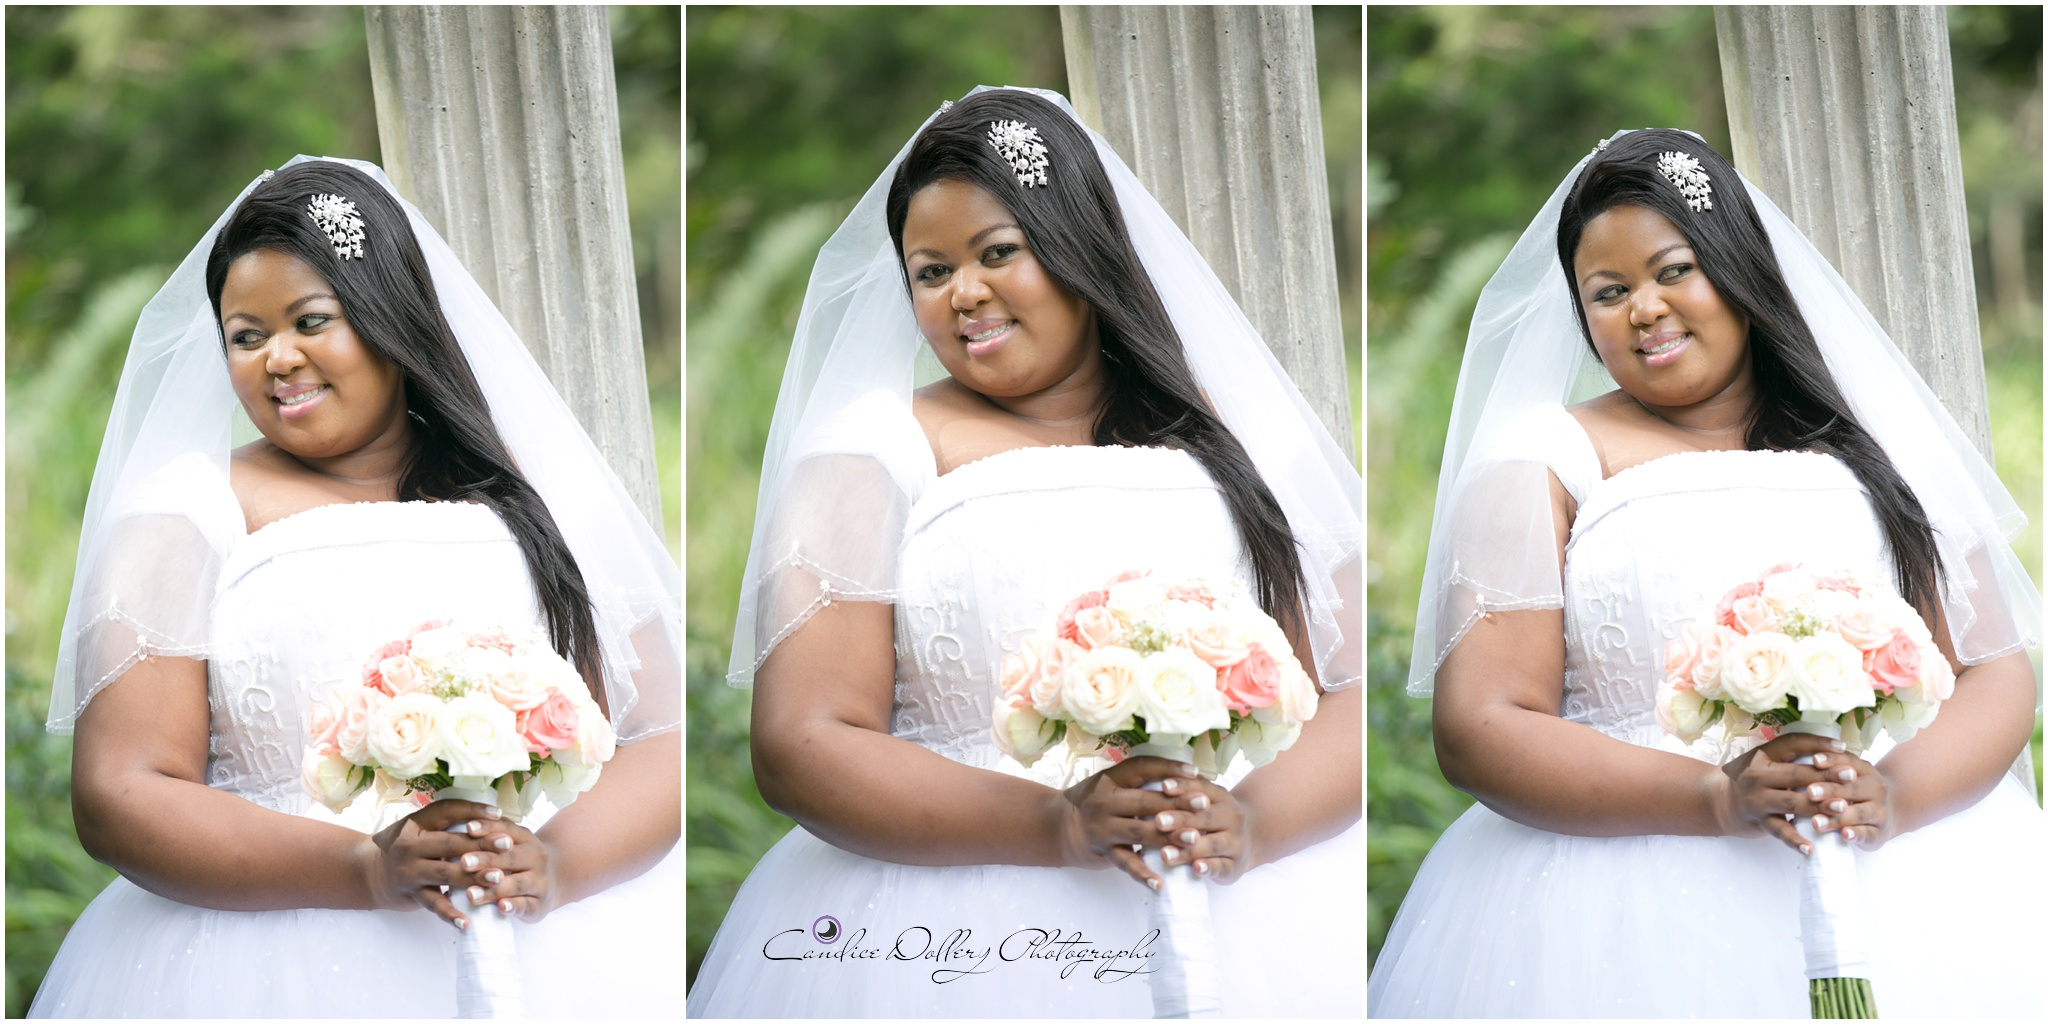 Wedding Gonubie Manor Thola & Phili-Candice Dollery Photograhy_4257